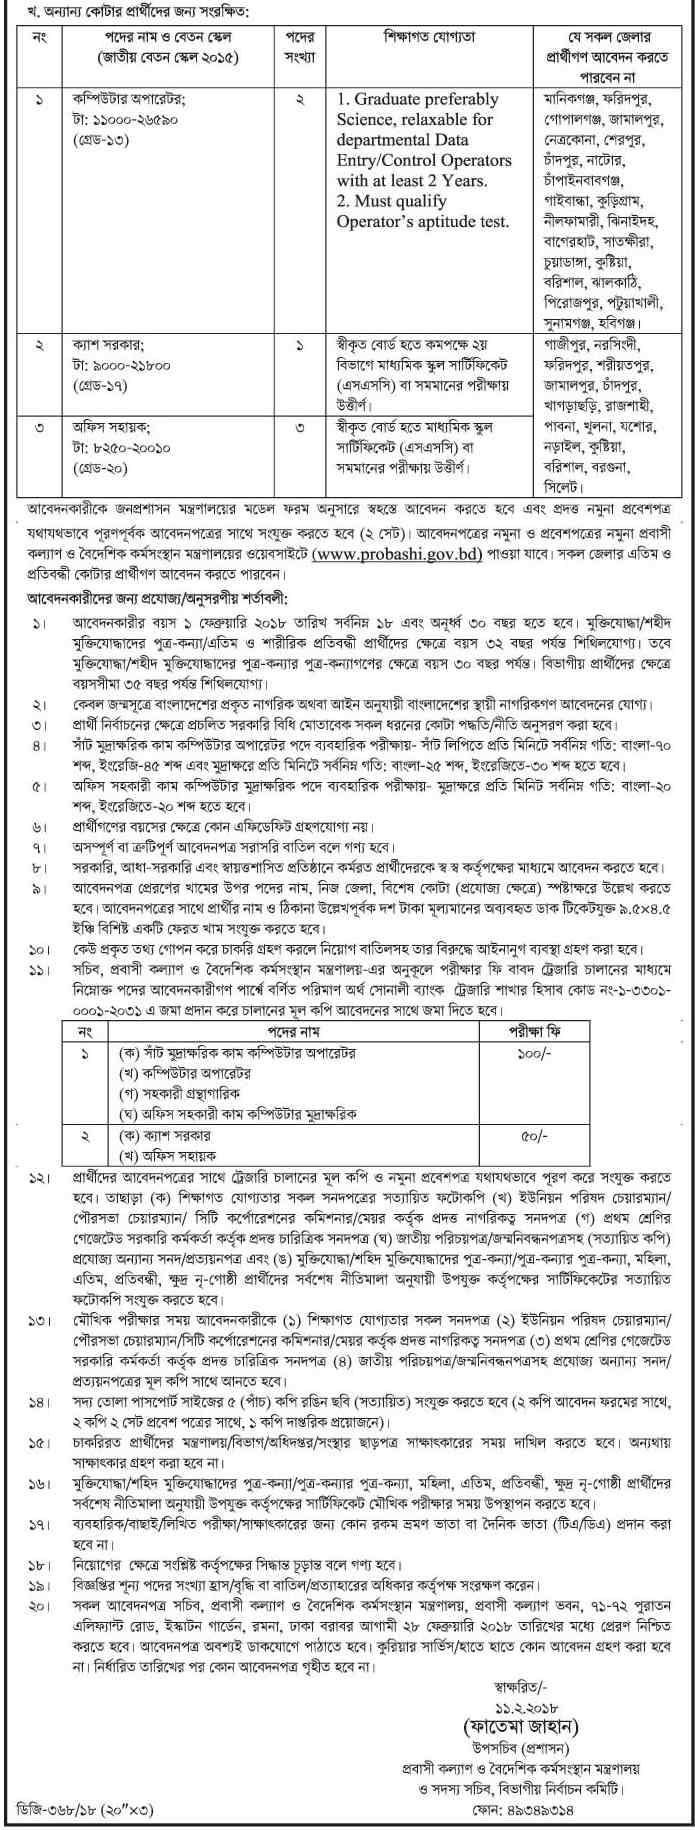 odsp application form 2018 government